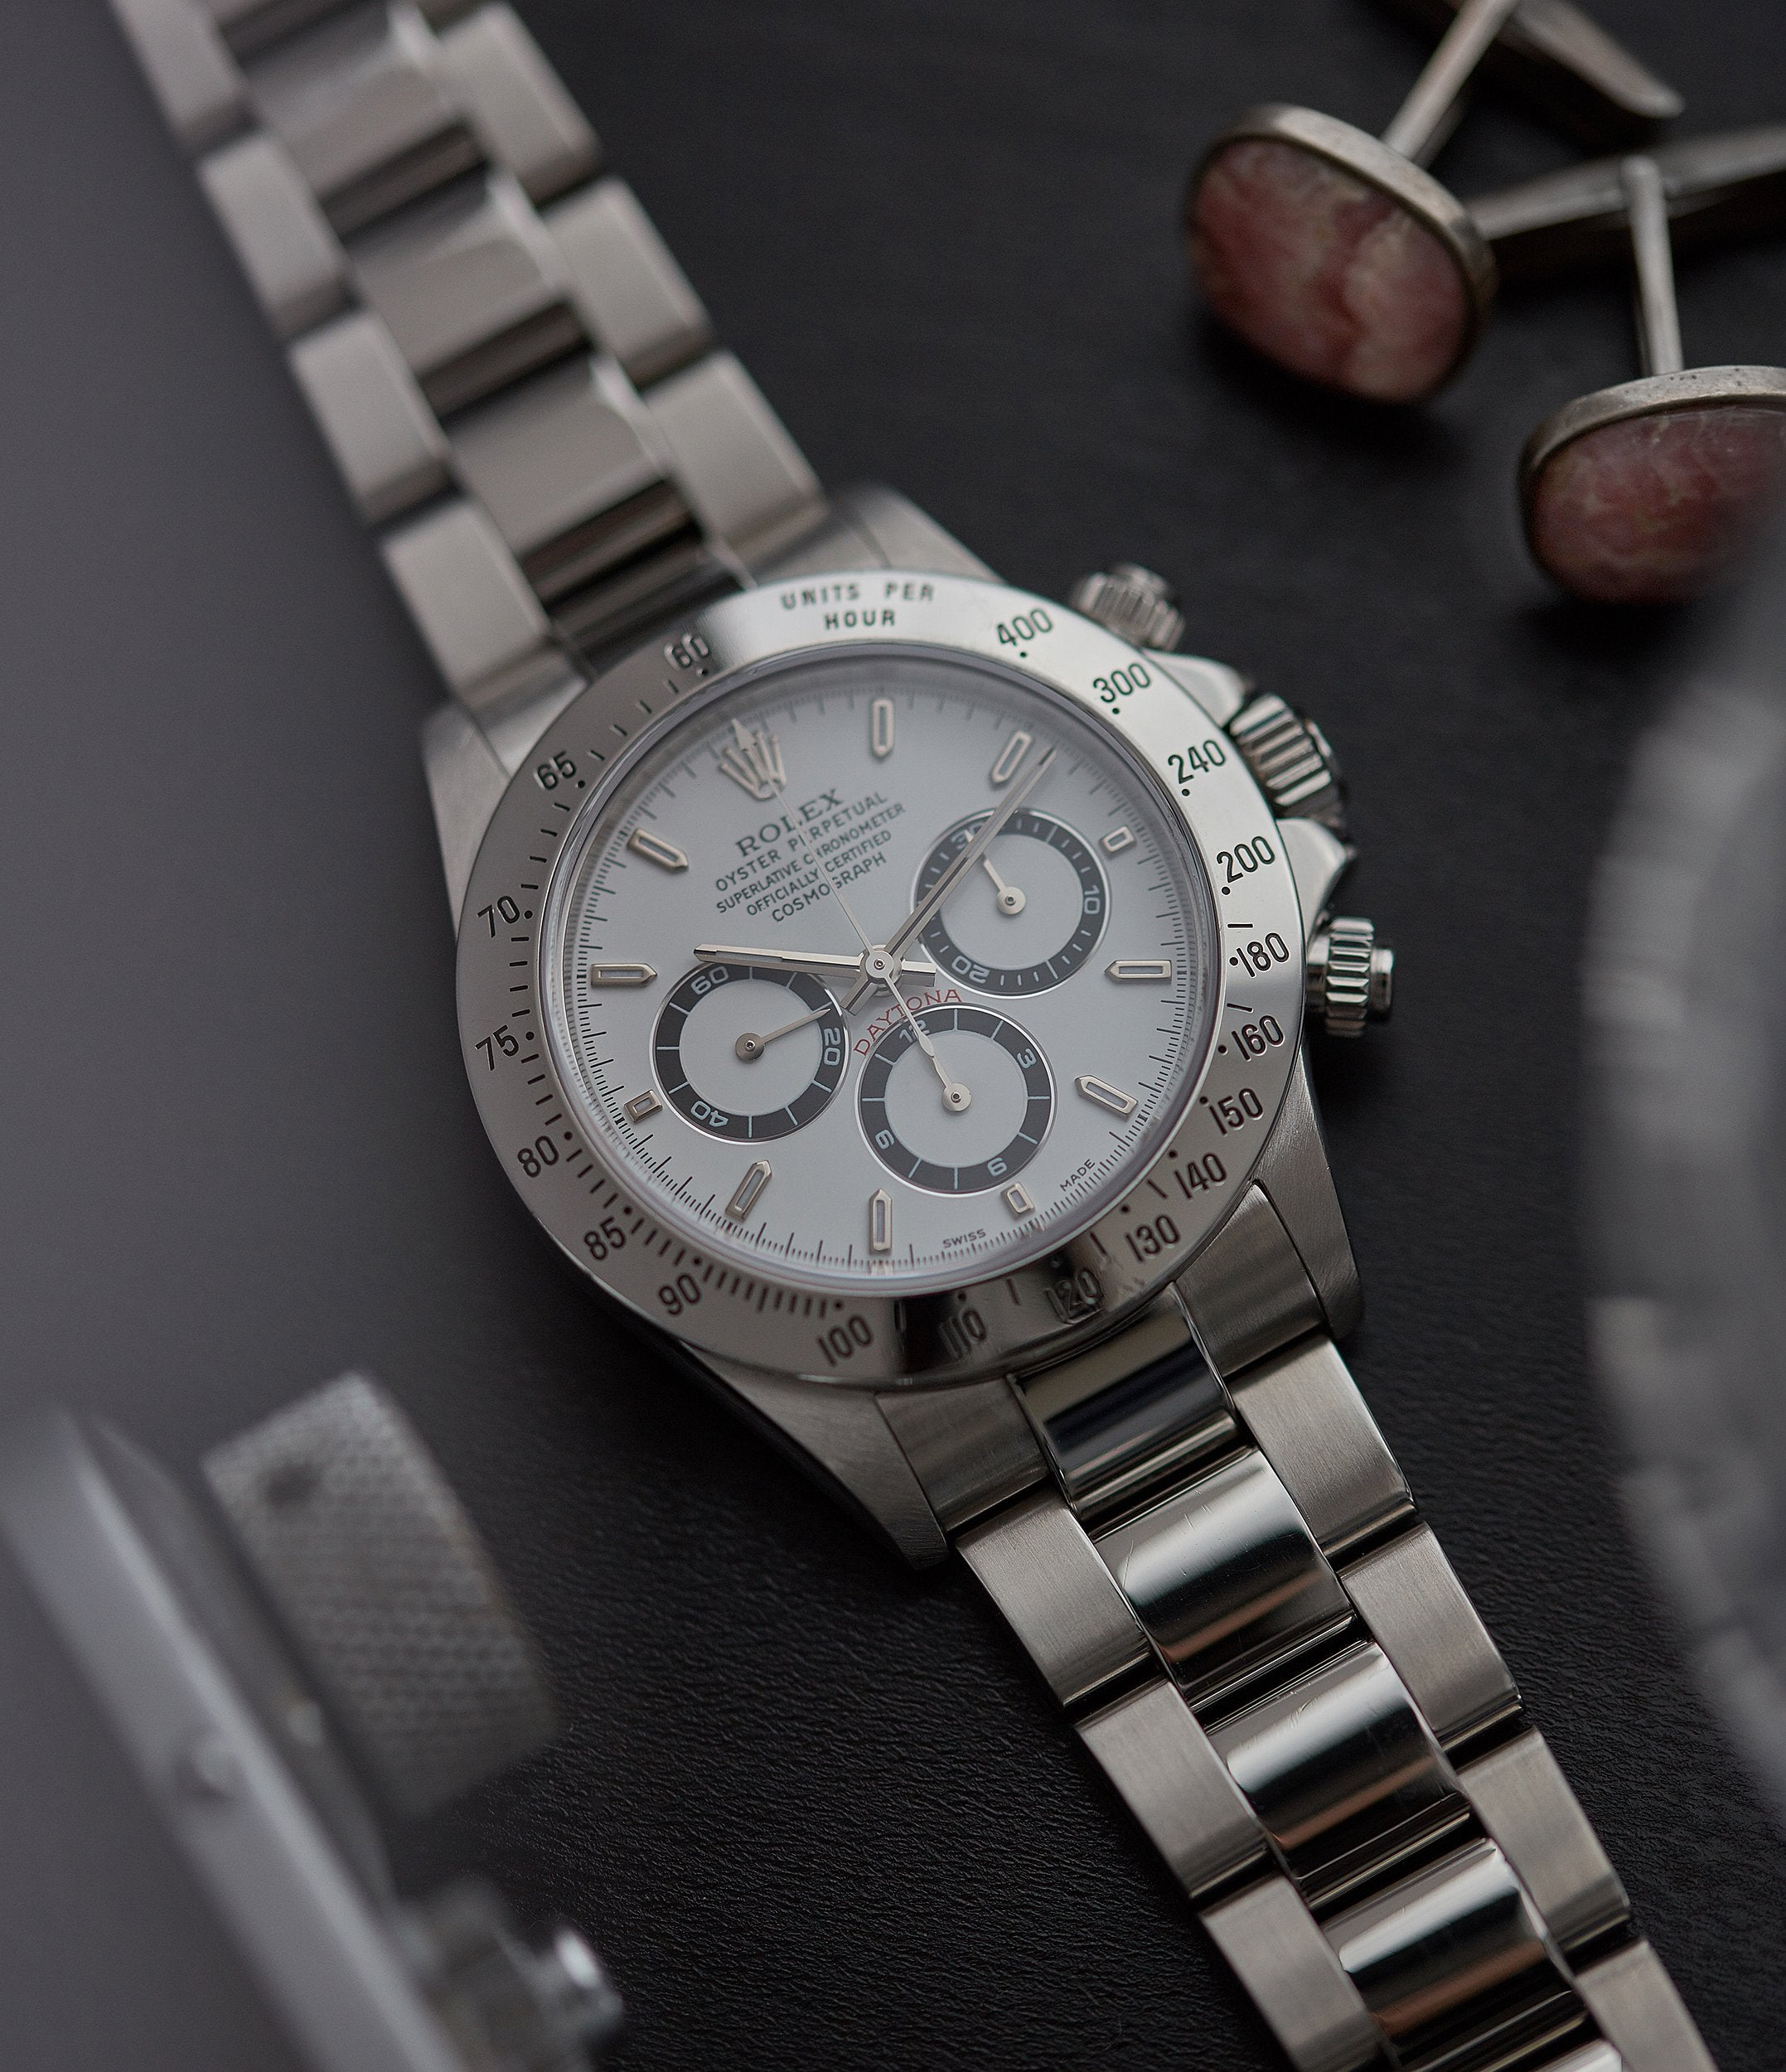 Ref. 16520 Rolex Daytona Zenith movement steel vintage chronograph sports watch full set for sale online A Collected Man London specialist rare watches